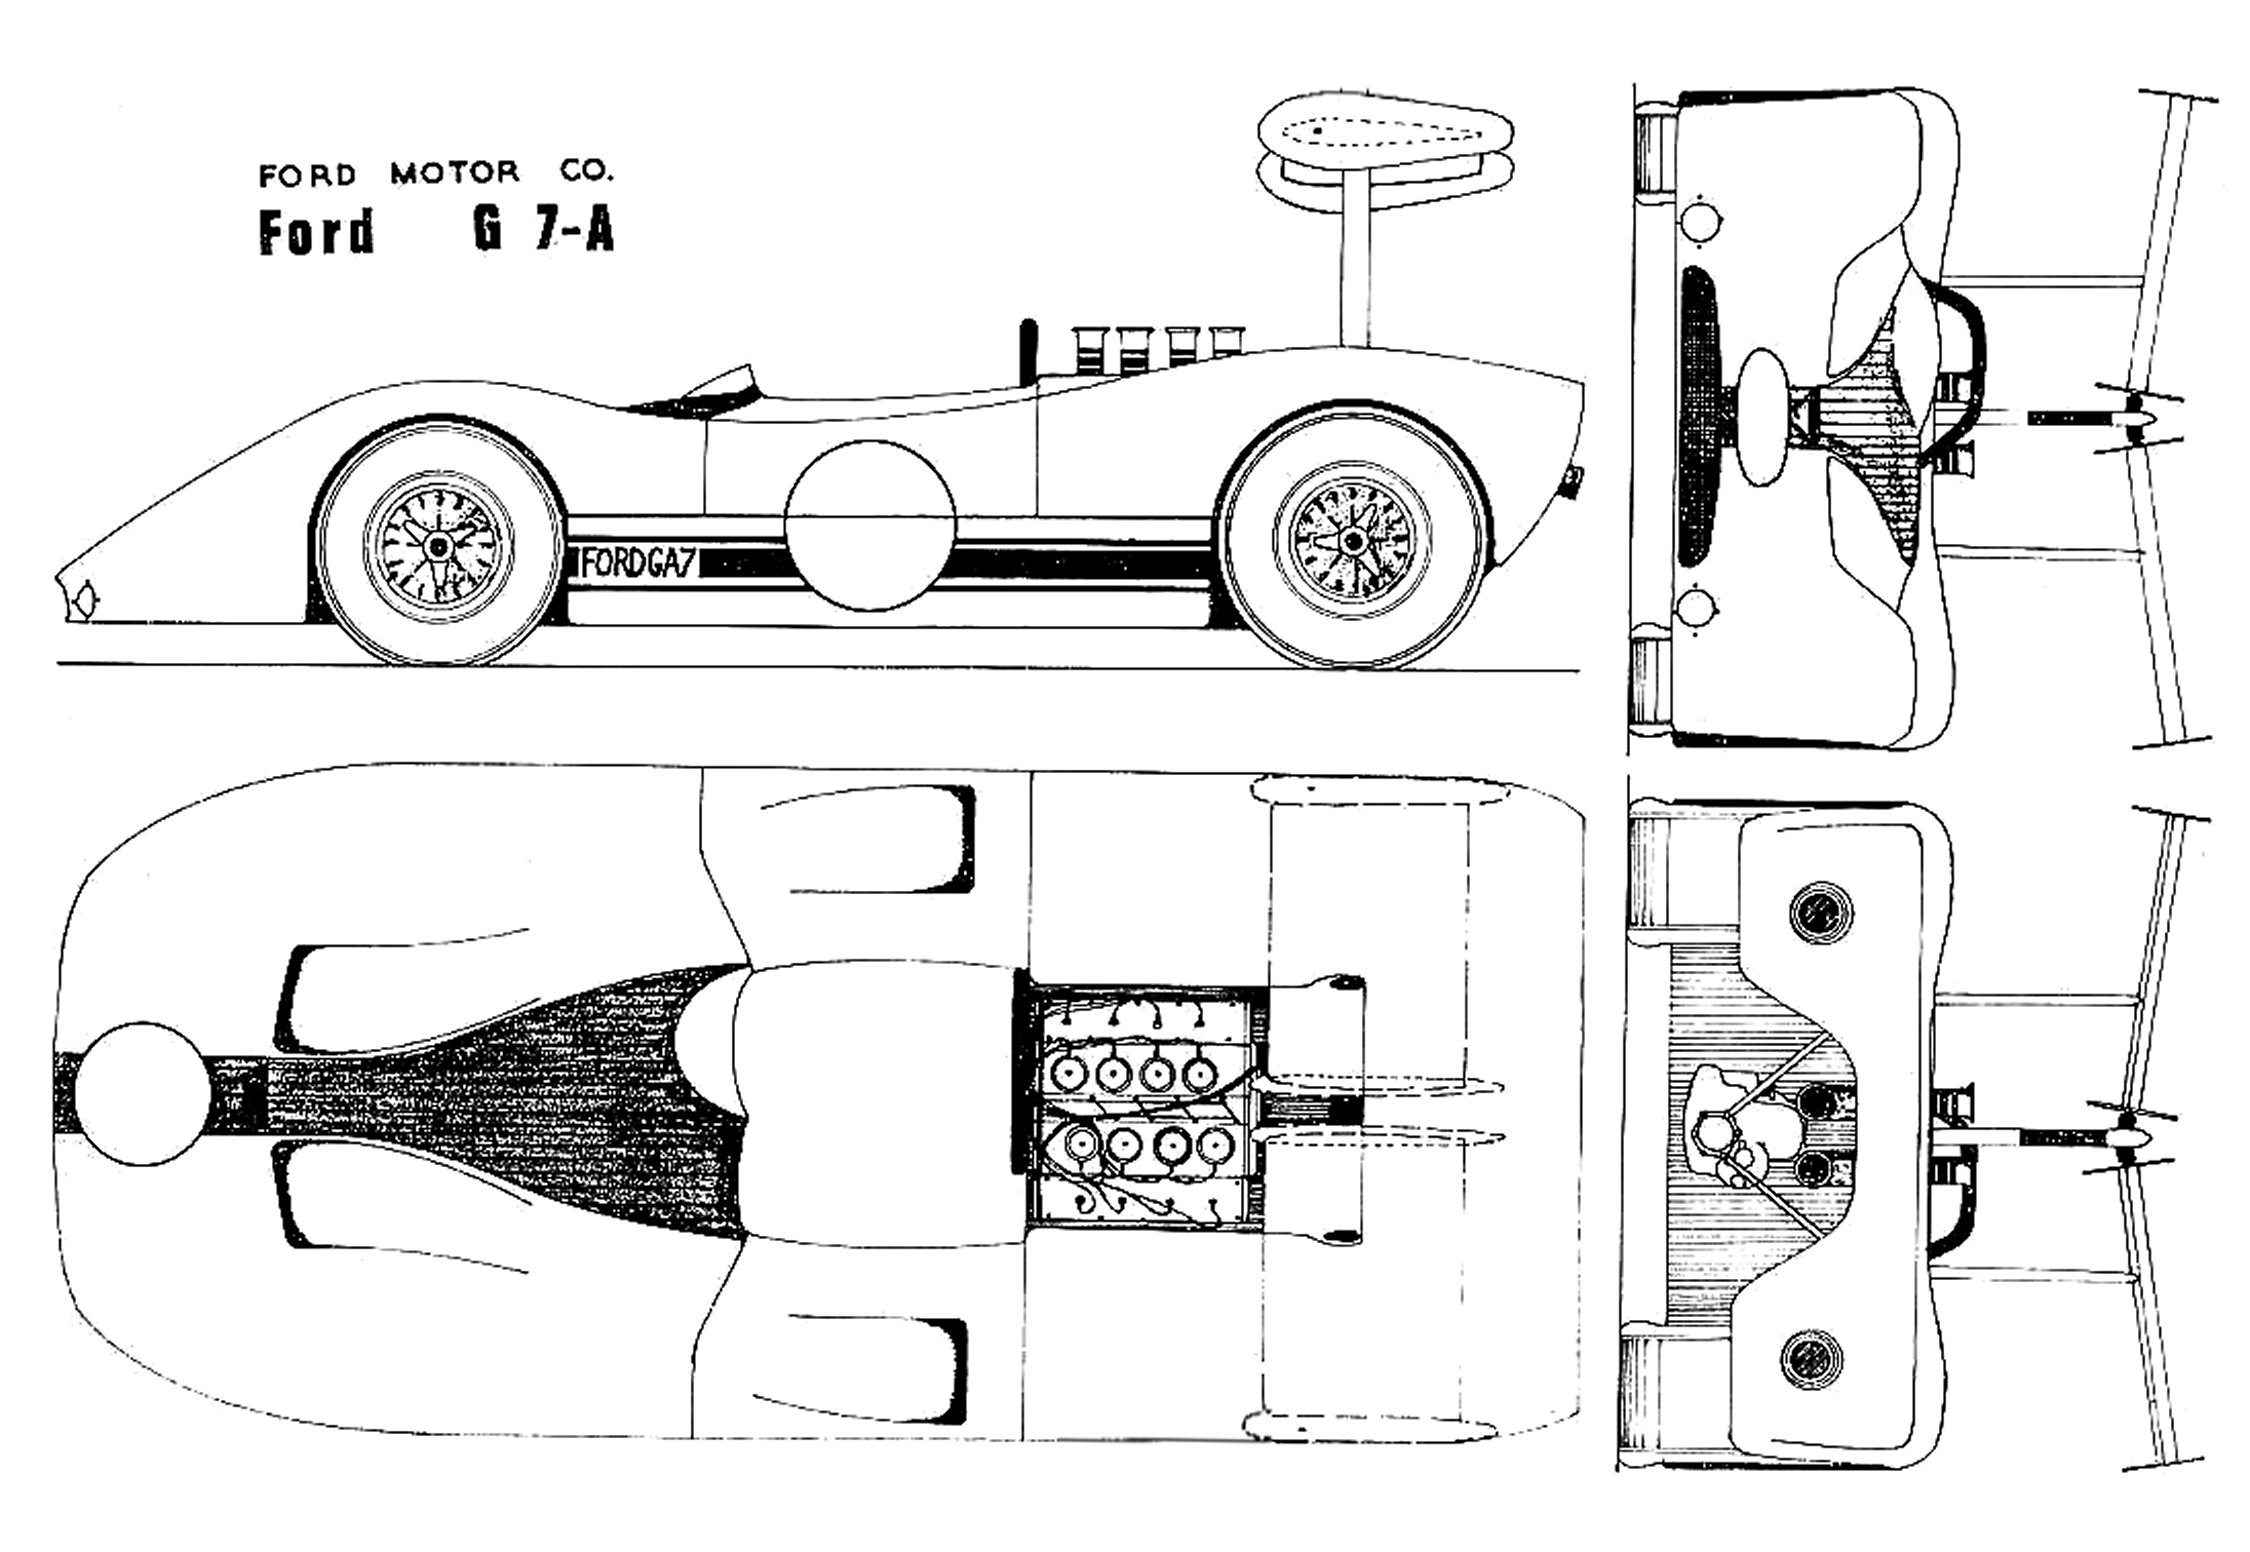 Ford G7a Blueprint